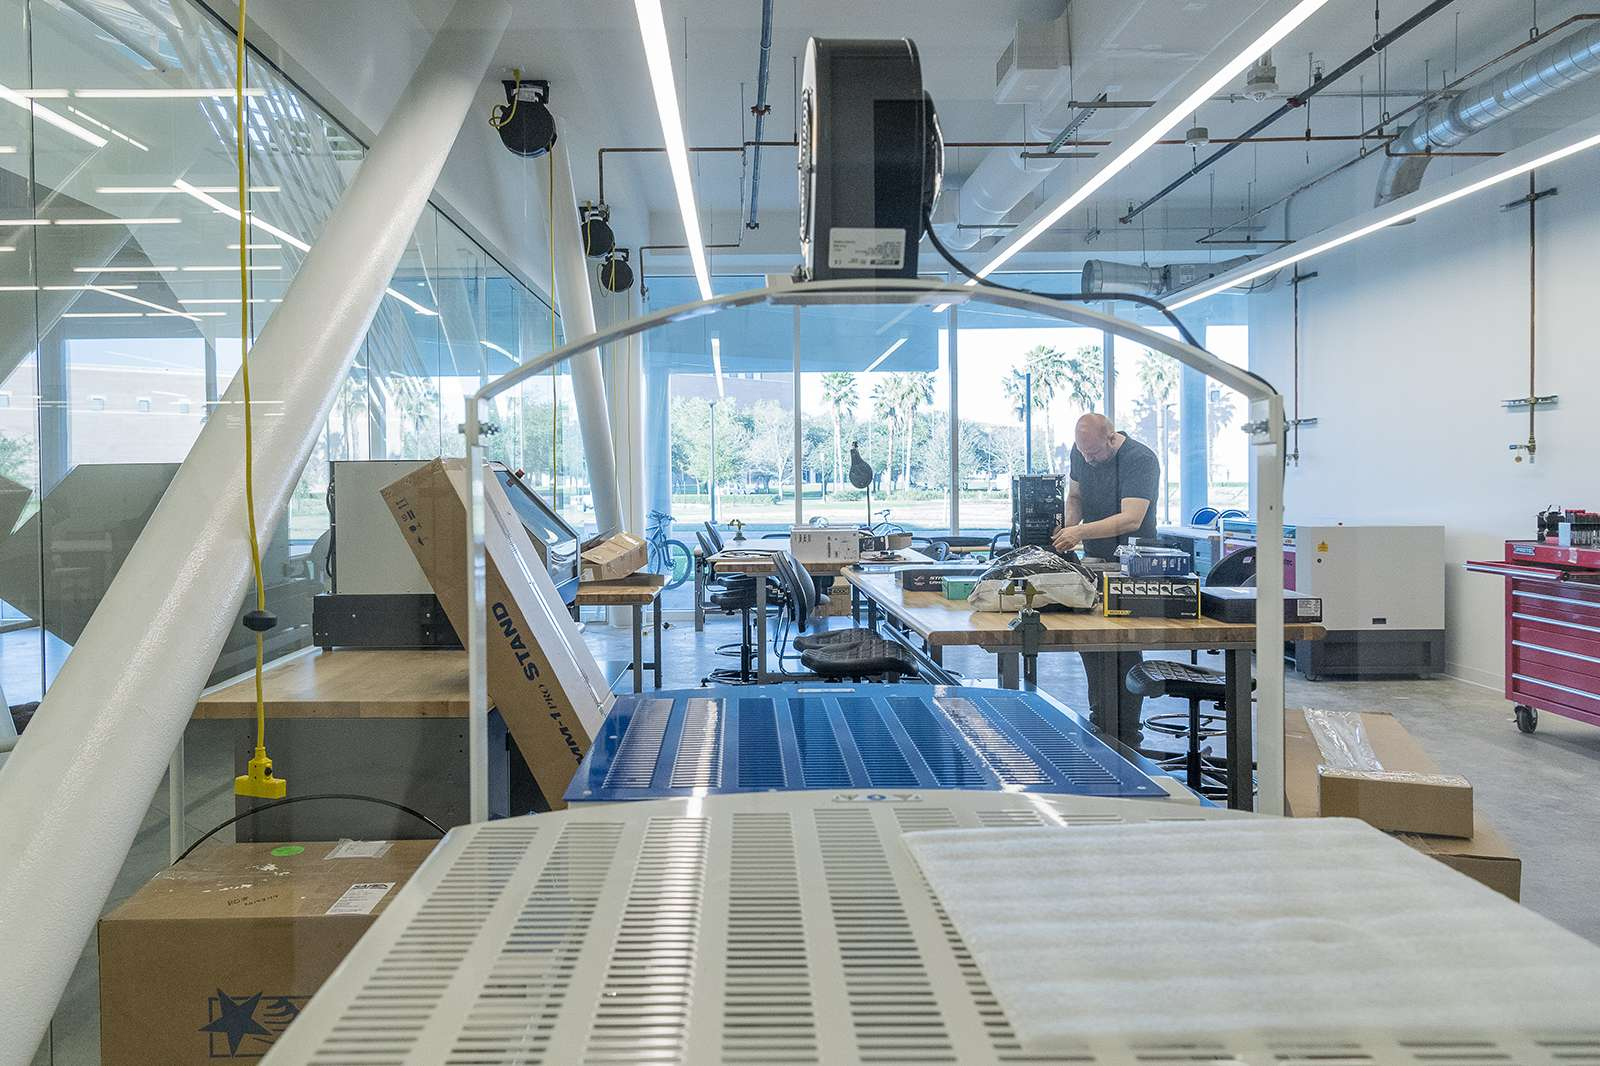 The rapid prototyping shop in the Moody Makerspace area. Photo: Nash Baker